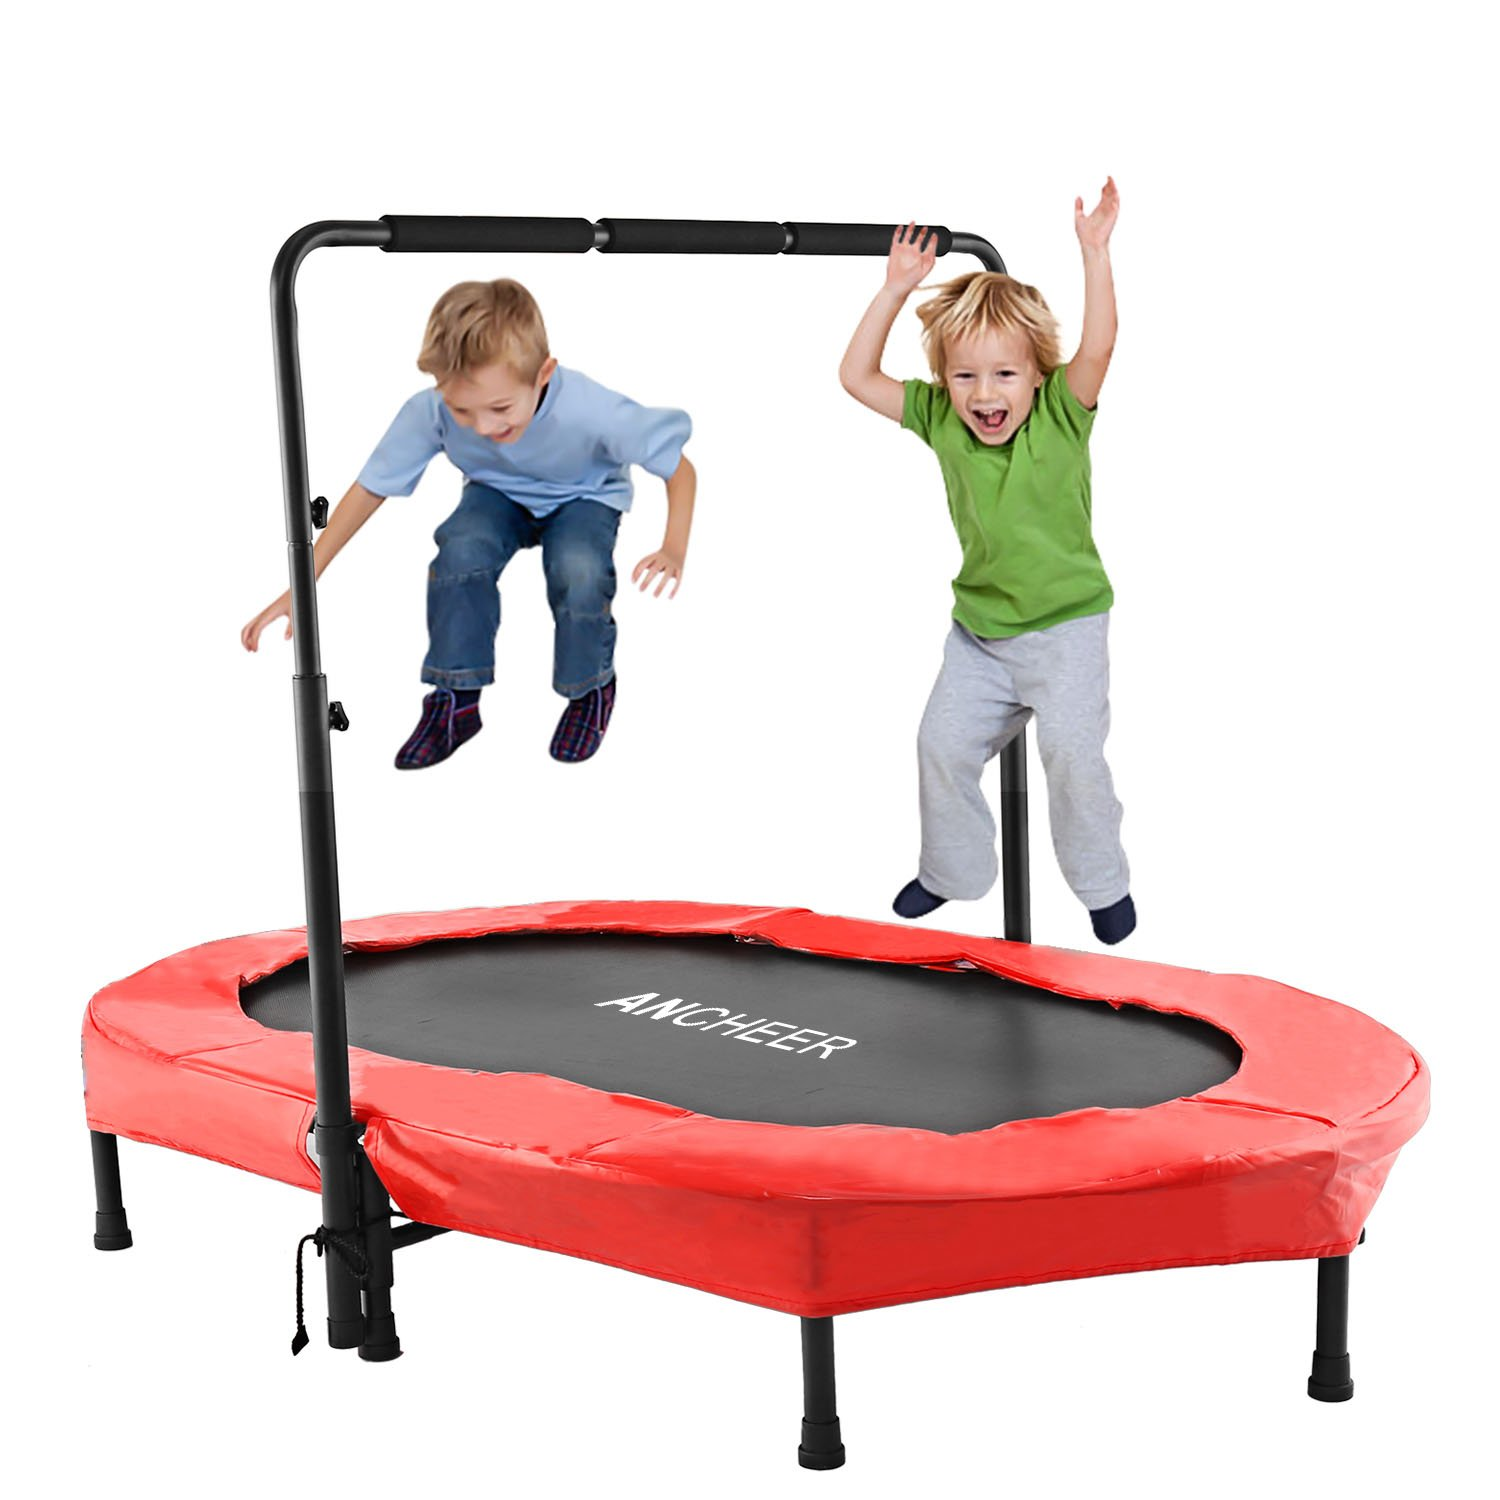 ANCHEER Mini Trampoline for Two Kids, Parent-Child Trampoline with Adjustable Handle by ANCHEER